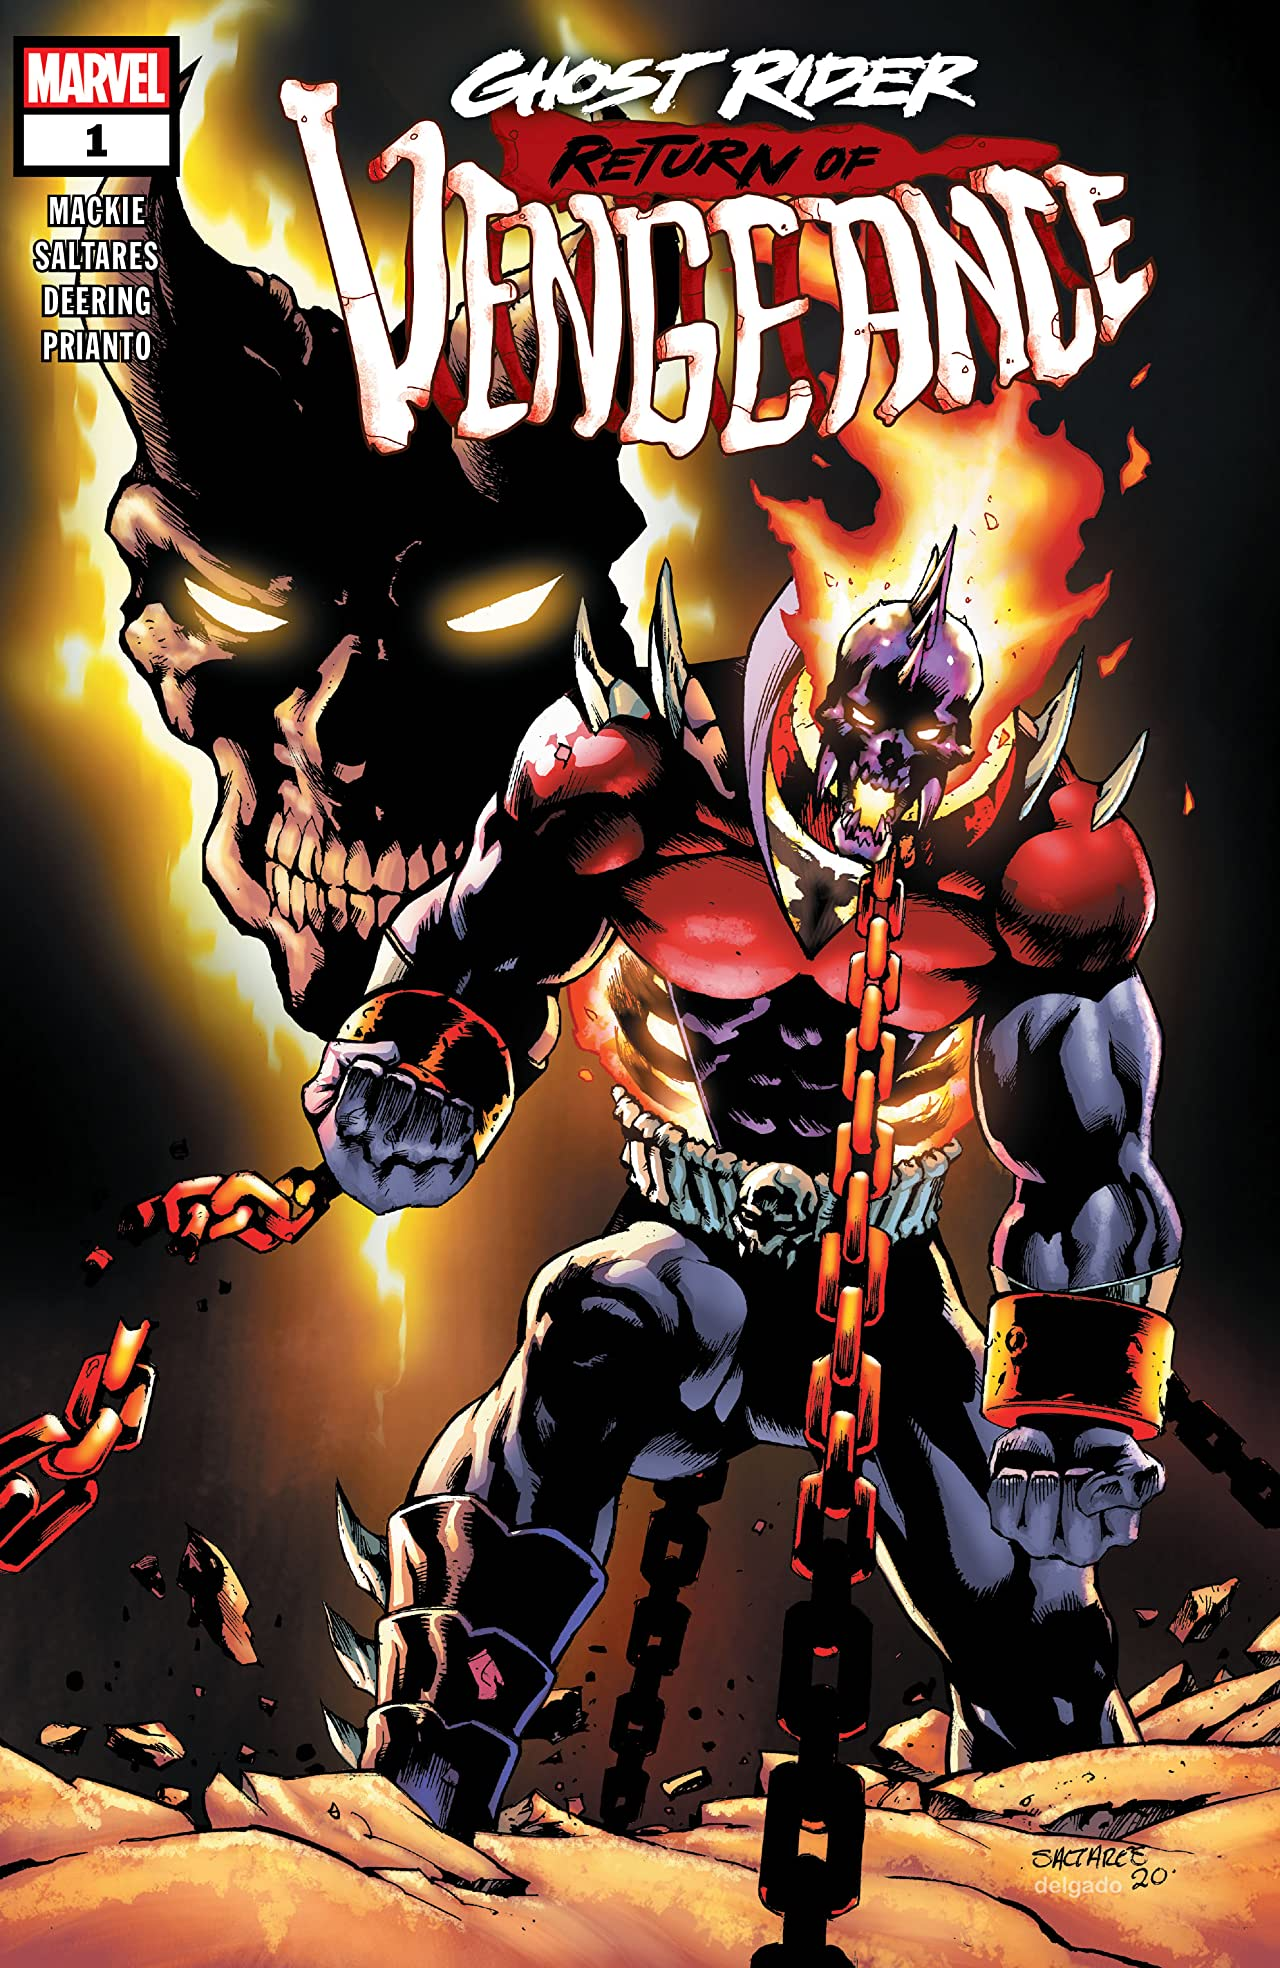 Ghost Rider: Return of Vengeance Vol 1 1